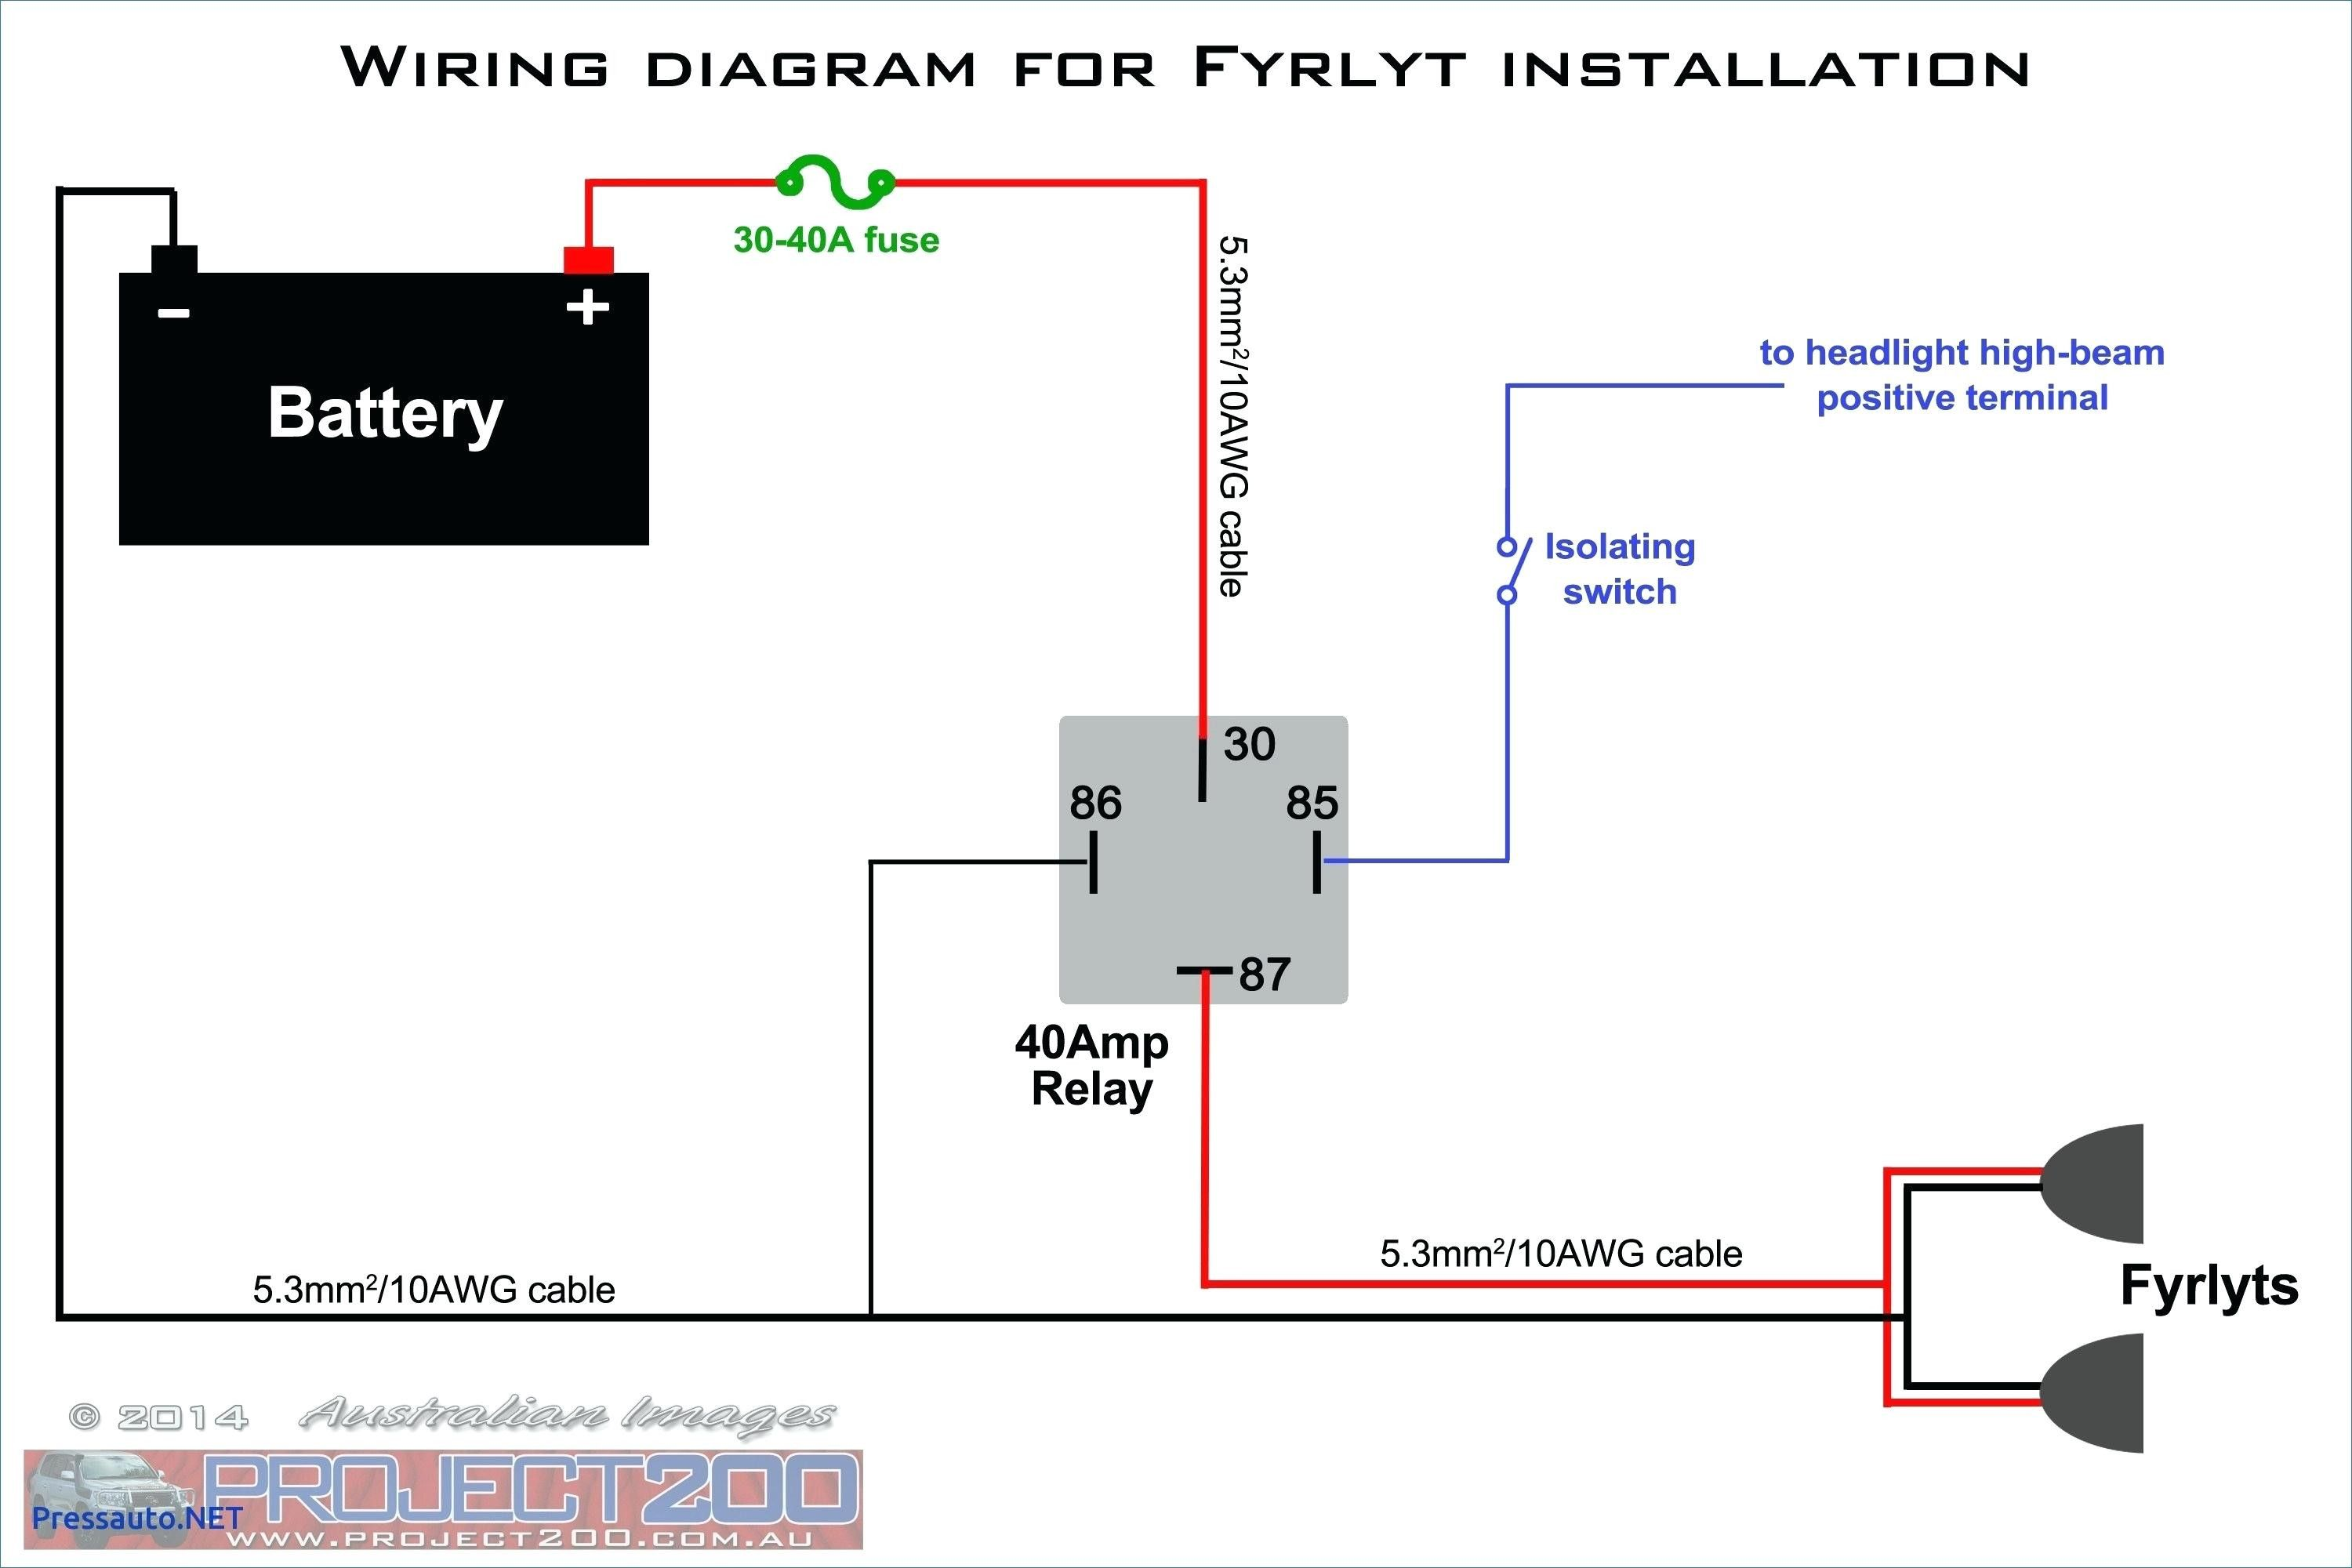 12v 5 Pin Relay Wiring Diagram Driving Lights How To Wire Of Kc At Electrical Wiring Diagram Electrical Circuit Diagram Diagram